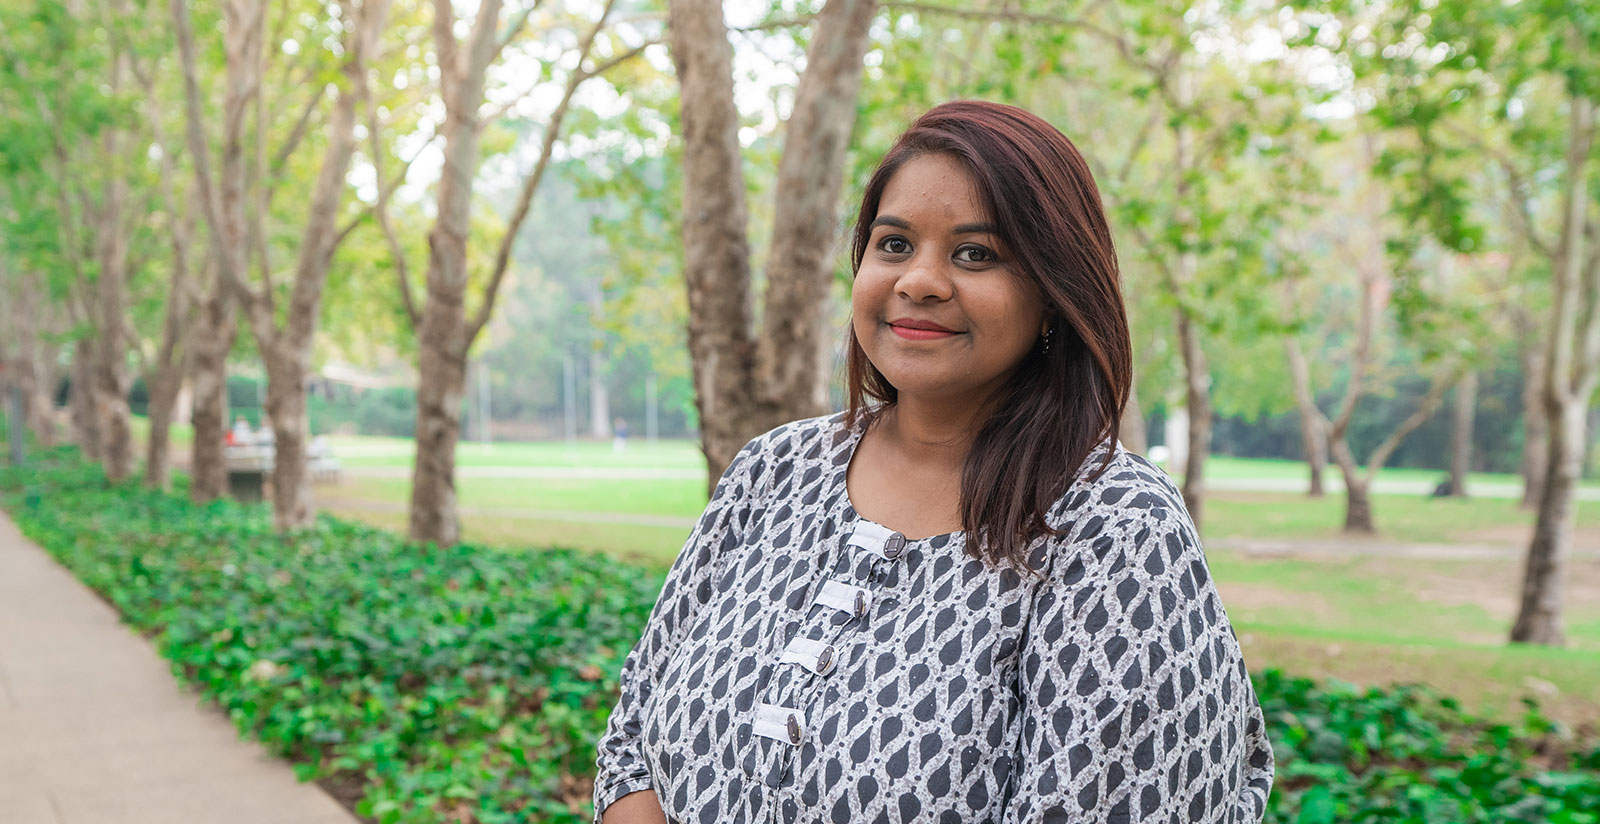 Students like Aparna are choosing ethical employers over big salaries according to a Macquarie Business School survery.